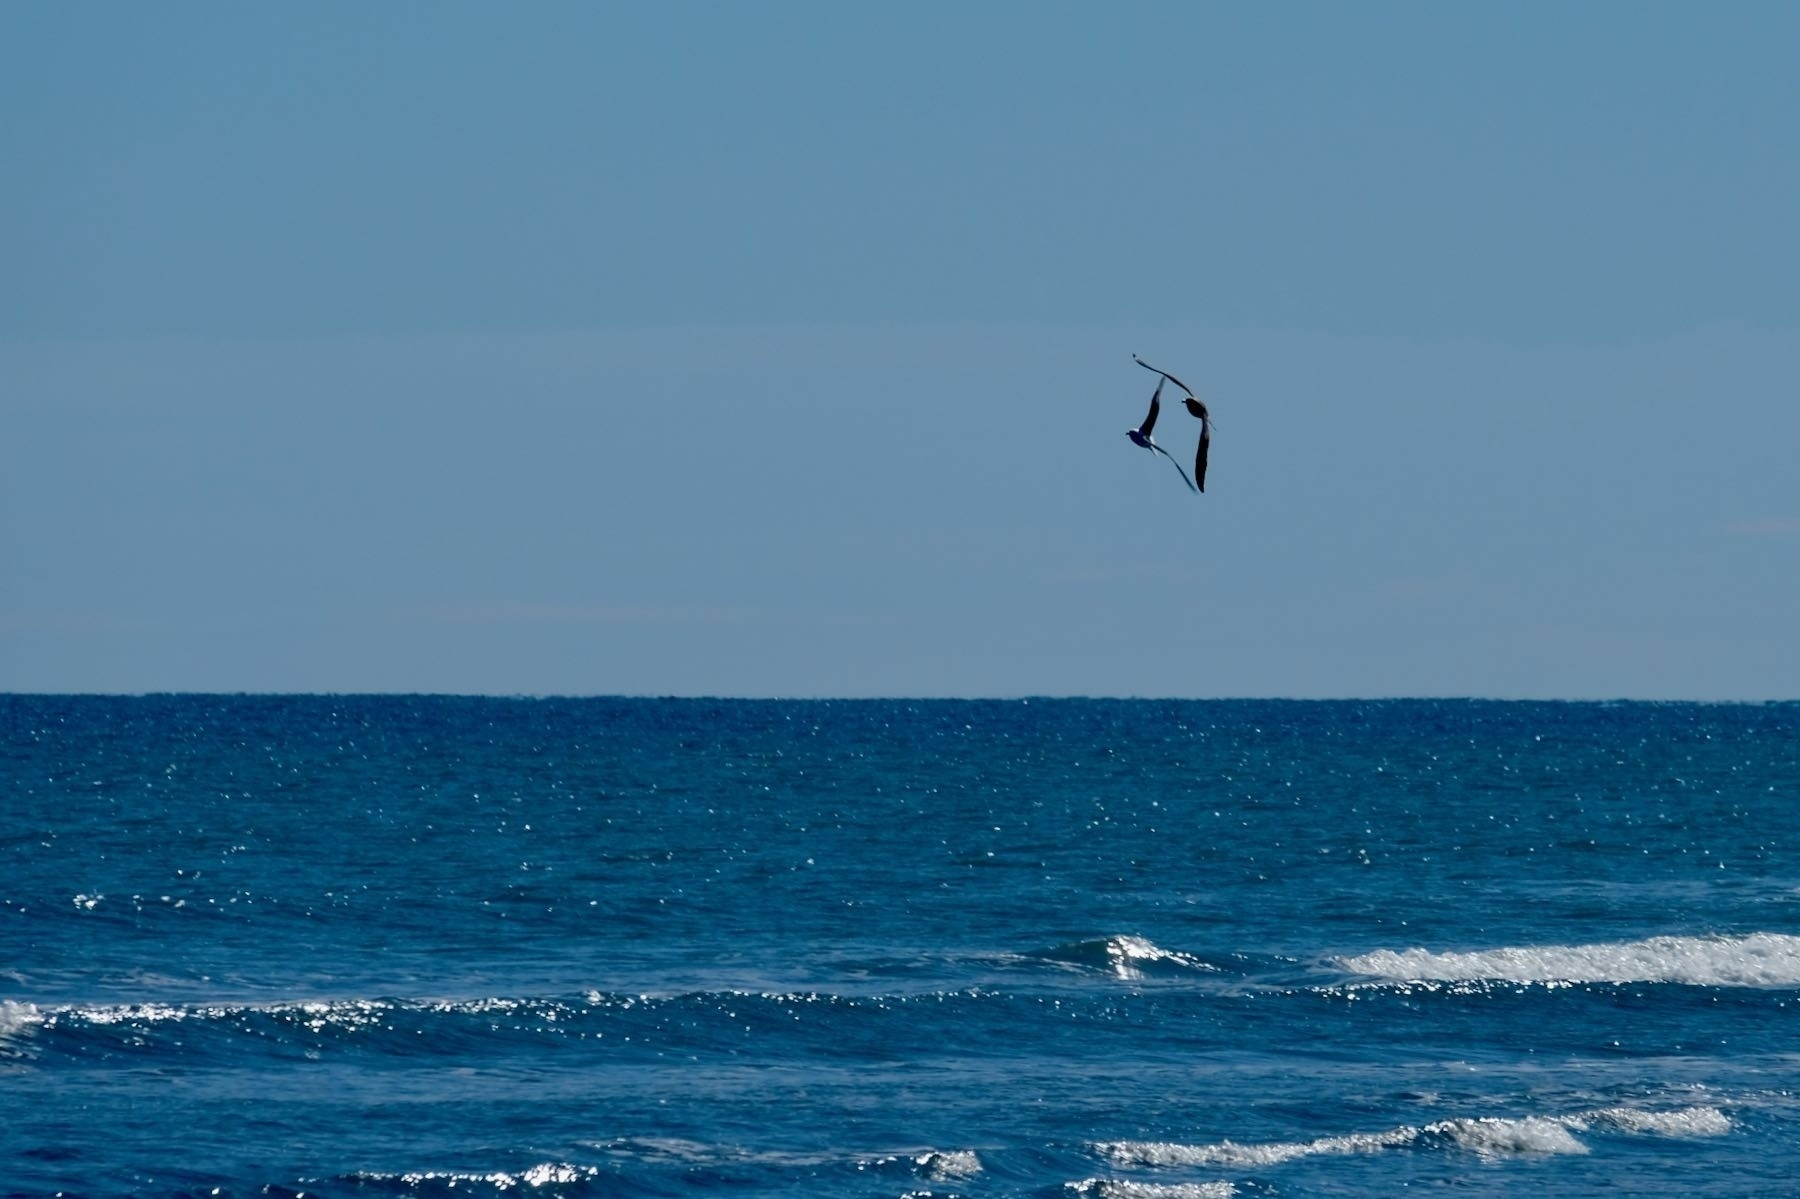 Two gulls flying whose winds seem to form a recnatgle.